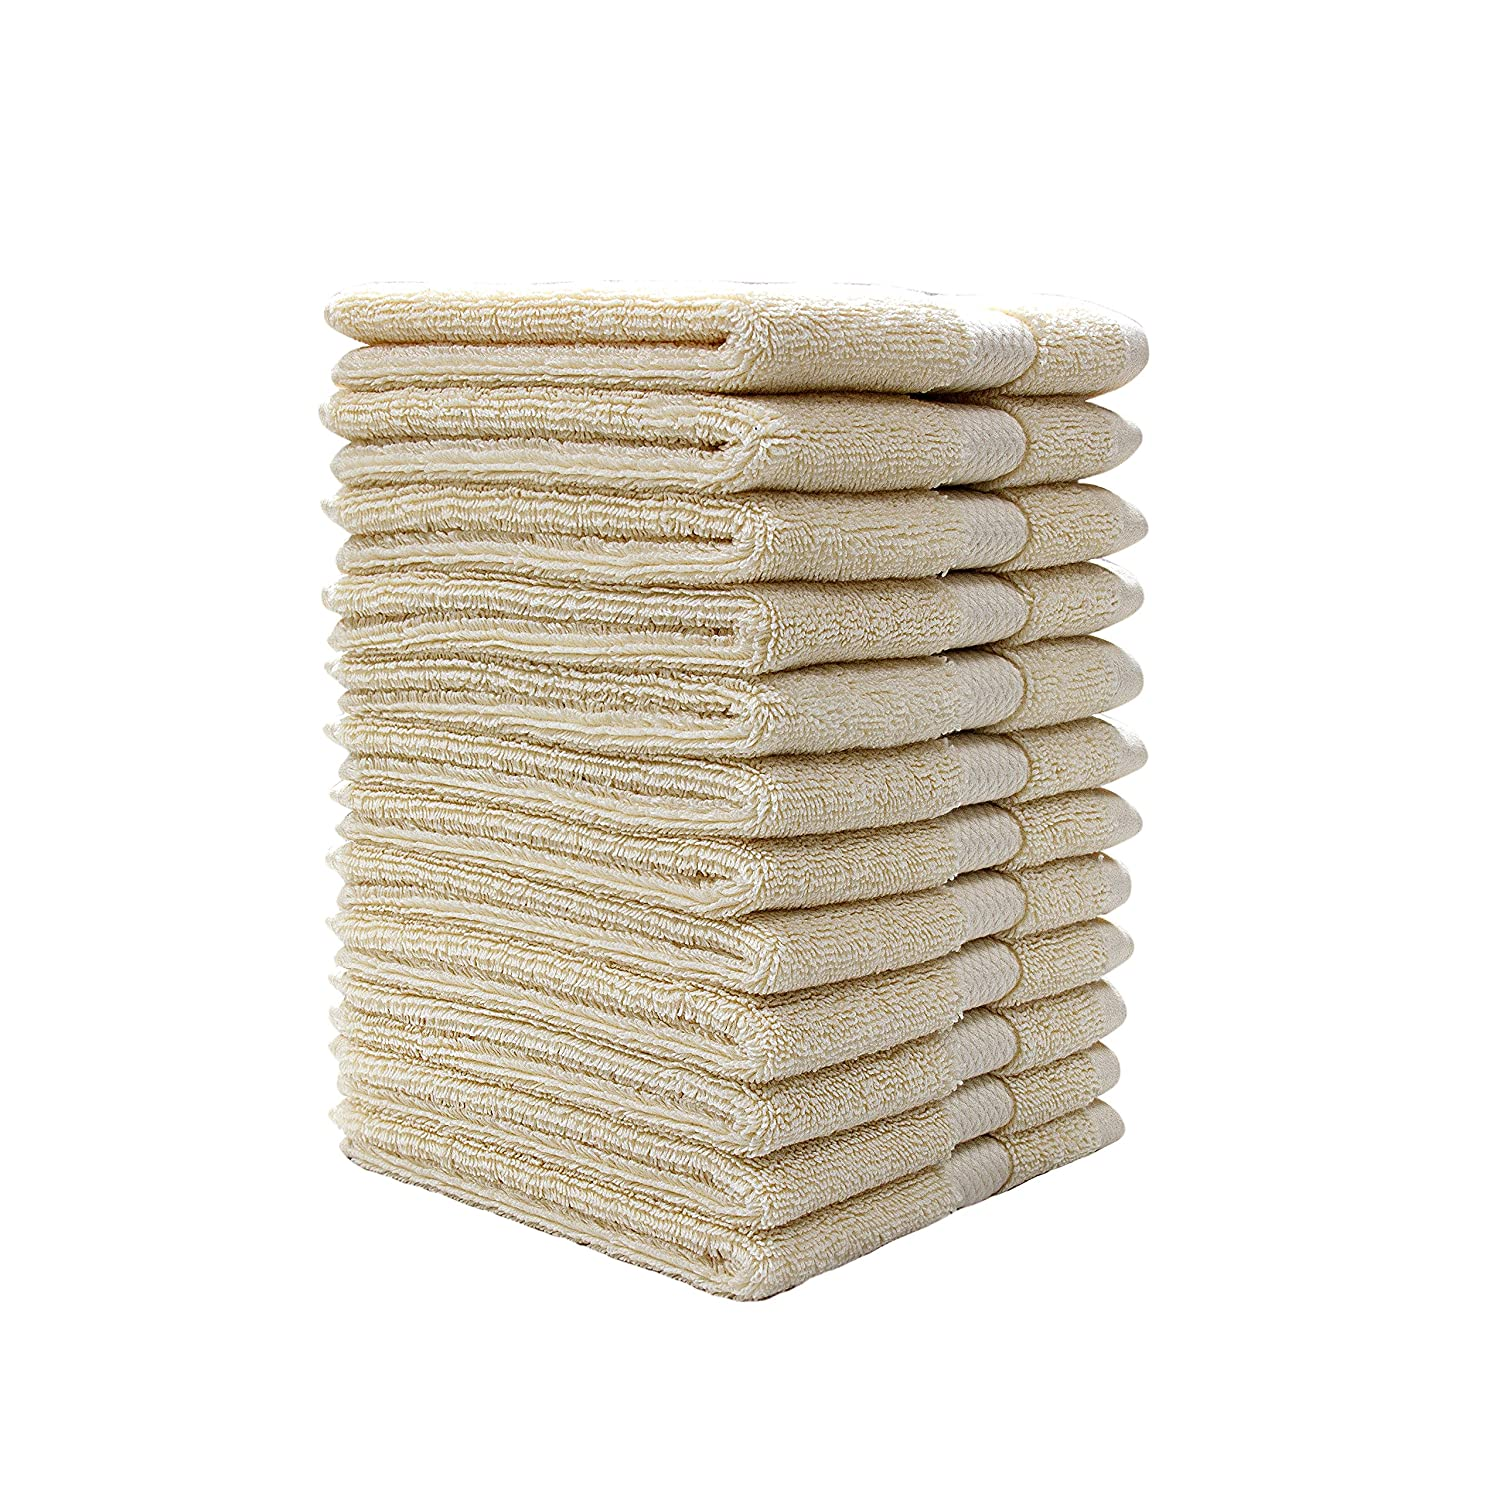 "Bumble Luxury Plush Wash Cloth Set - 13"" x 13"" Premium 12 Pack Wash Cloth Set - Ultra Soft, Highly Absorbent 800 GSM Heavy Weight Combed Cotton - White Bumble Towels"